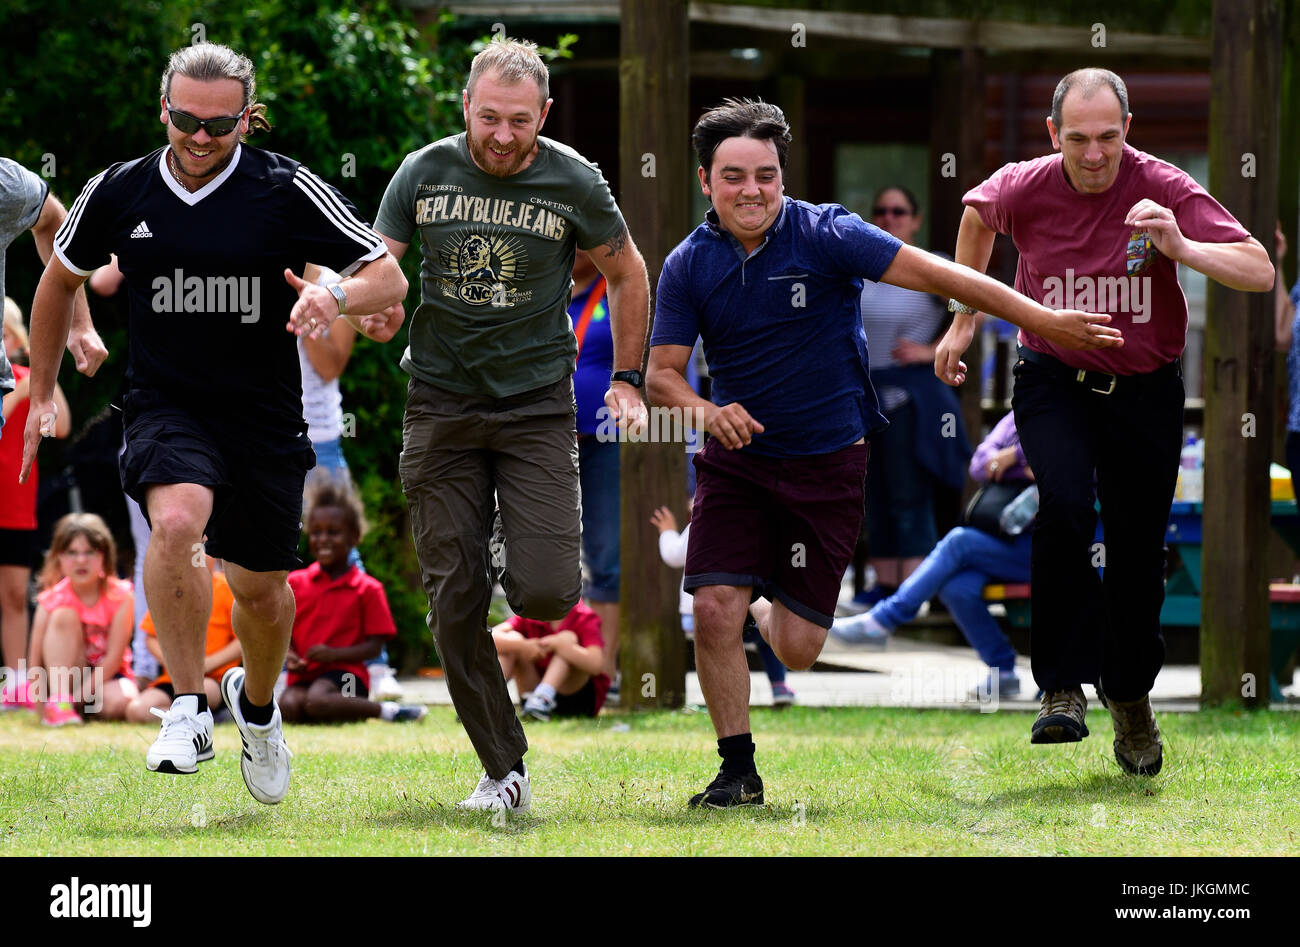 Fathers' race event at an infants school sports day, Bordon, hampshire, UK. 14 July 2017. - Stock Image